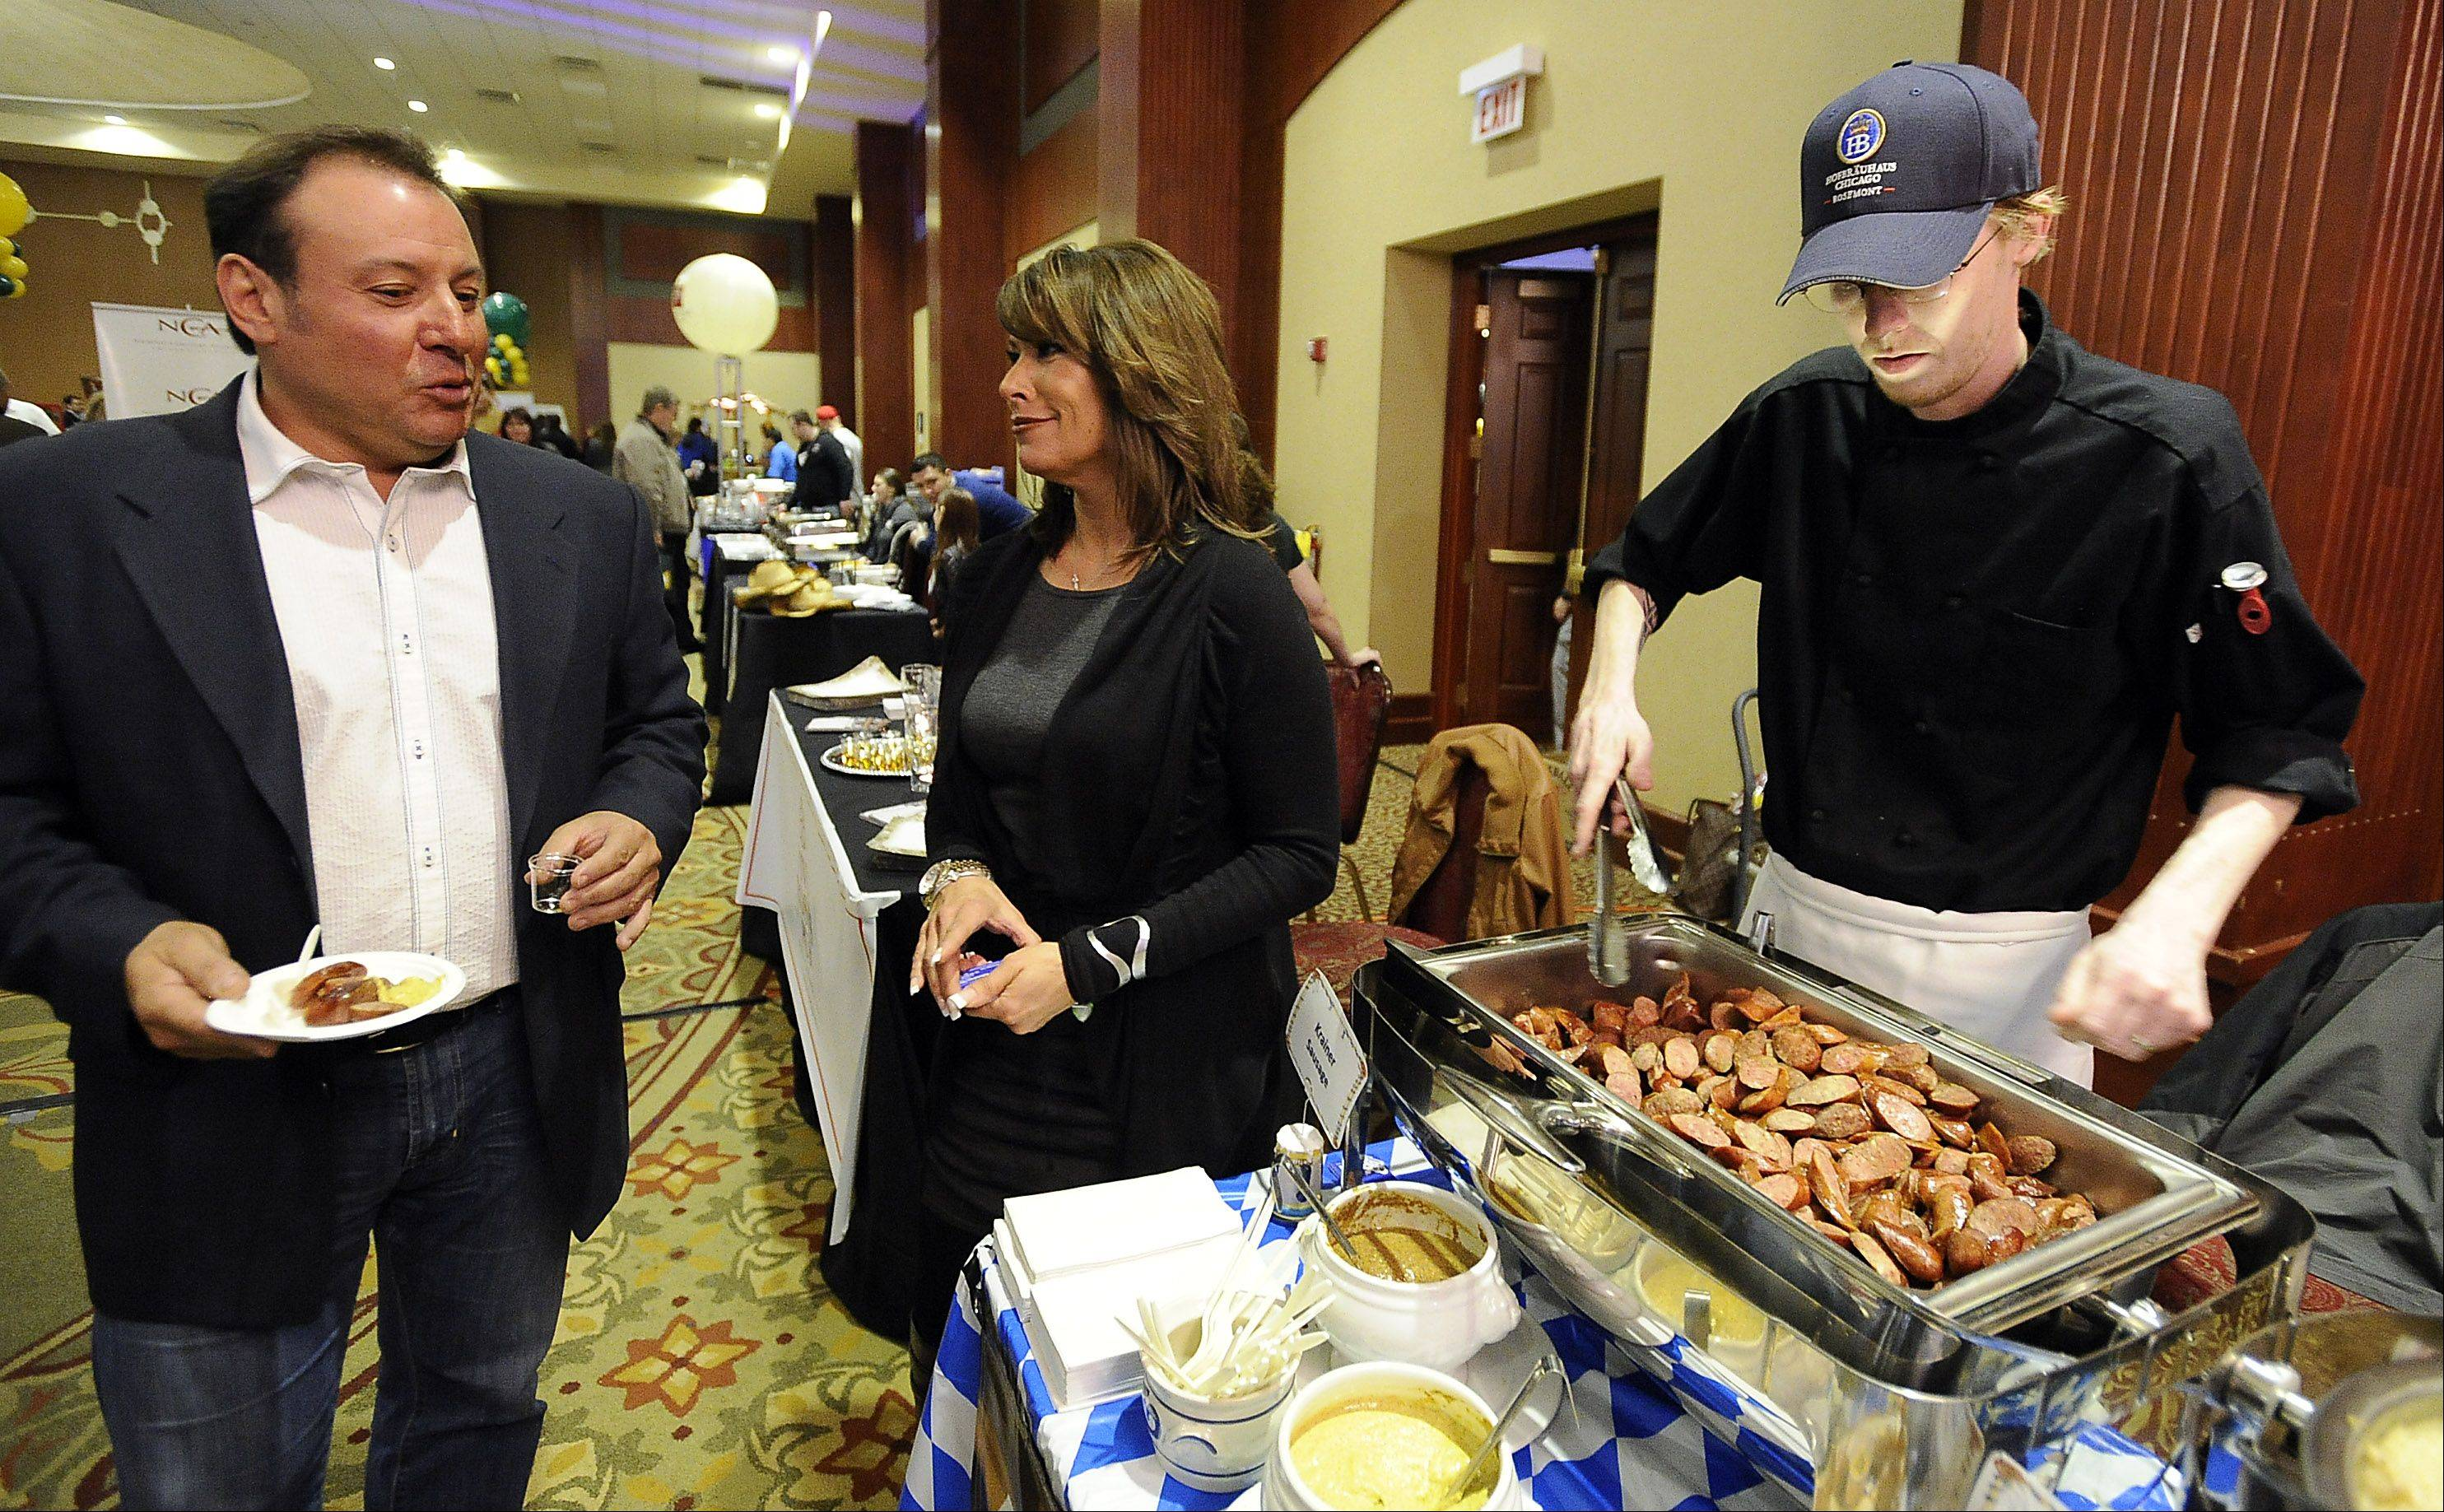 Dominick Mangiardi, independent sales agent for Ignite Payments, LLC. of Palatine talks with Laurel Clark, event sales manager of the Hofbrauhaus Chicago in Rosemont, at Thursday's Northwest Hospitality Expo 2013 at the Meadows Club in Rolling Meadows.